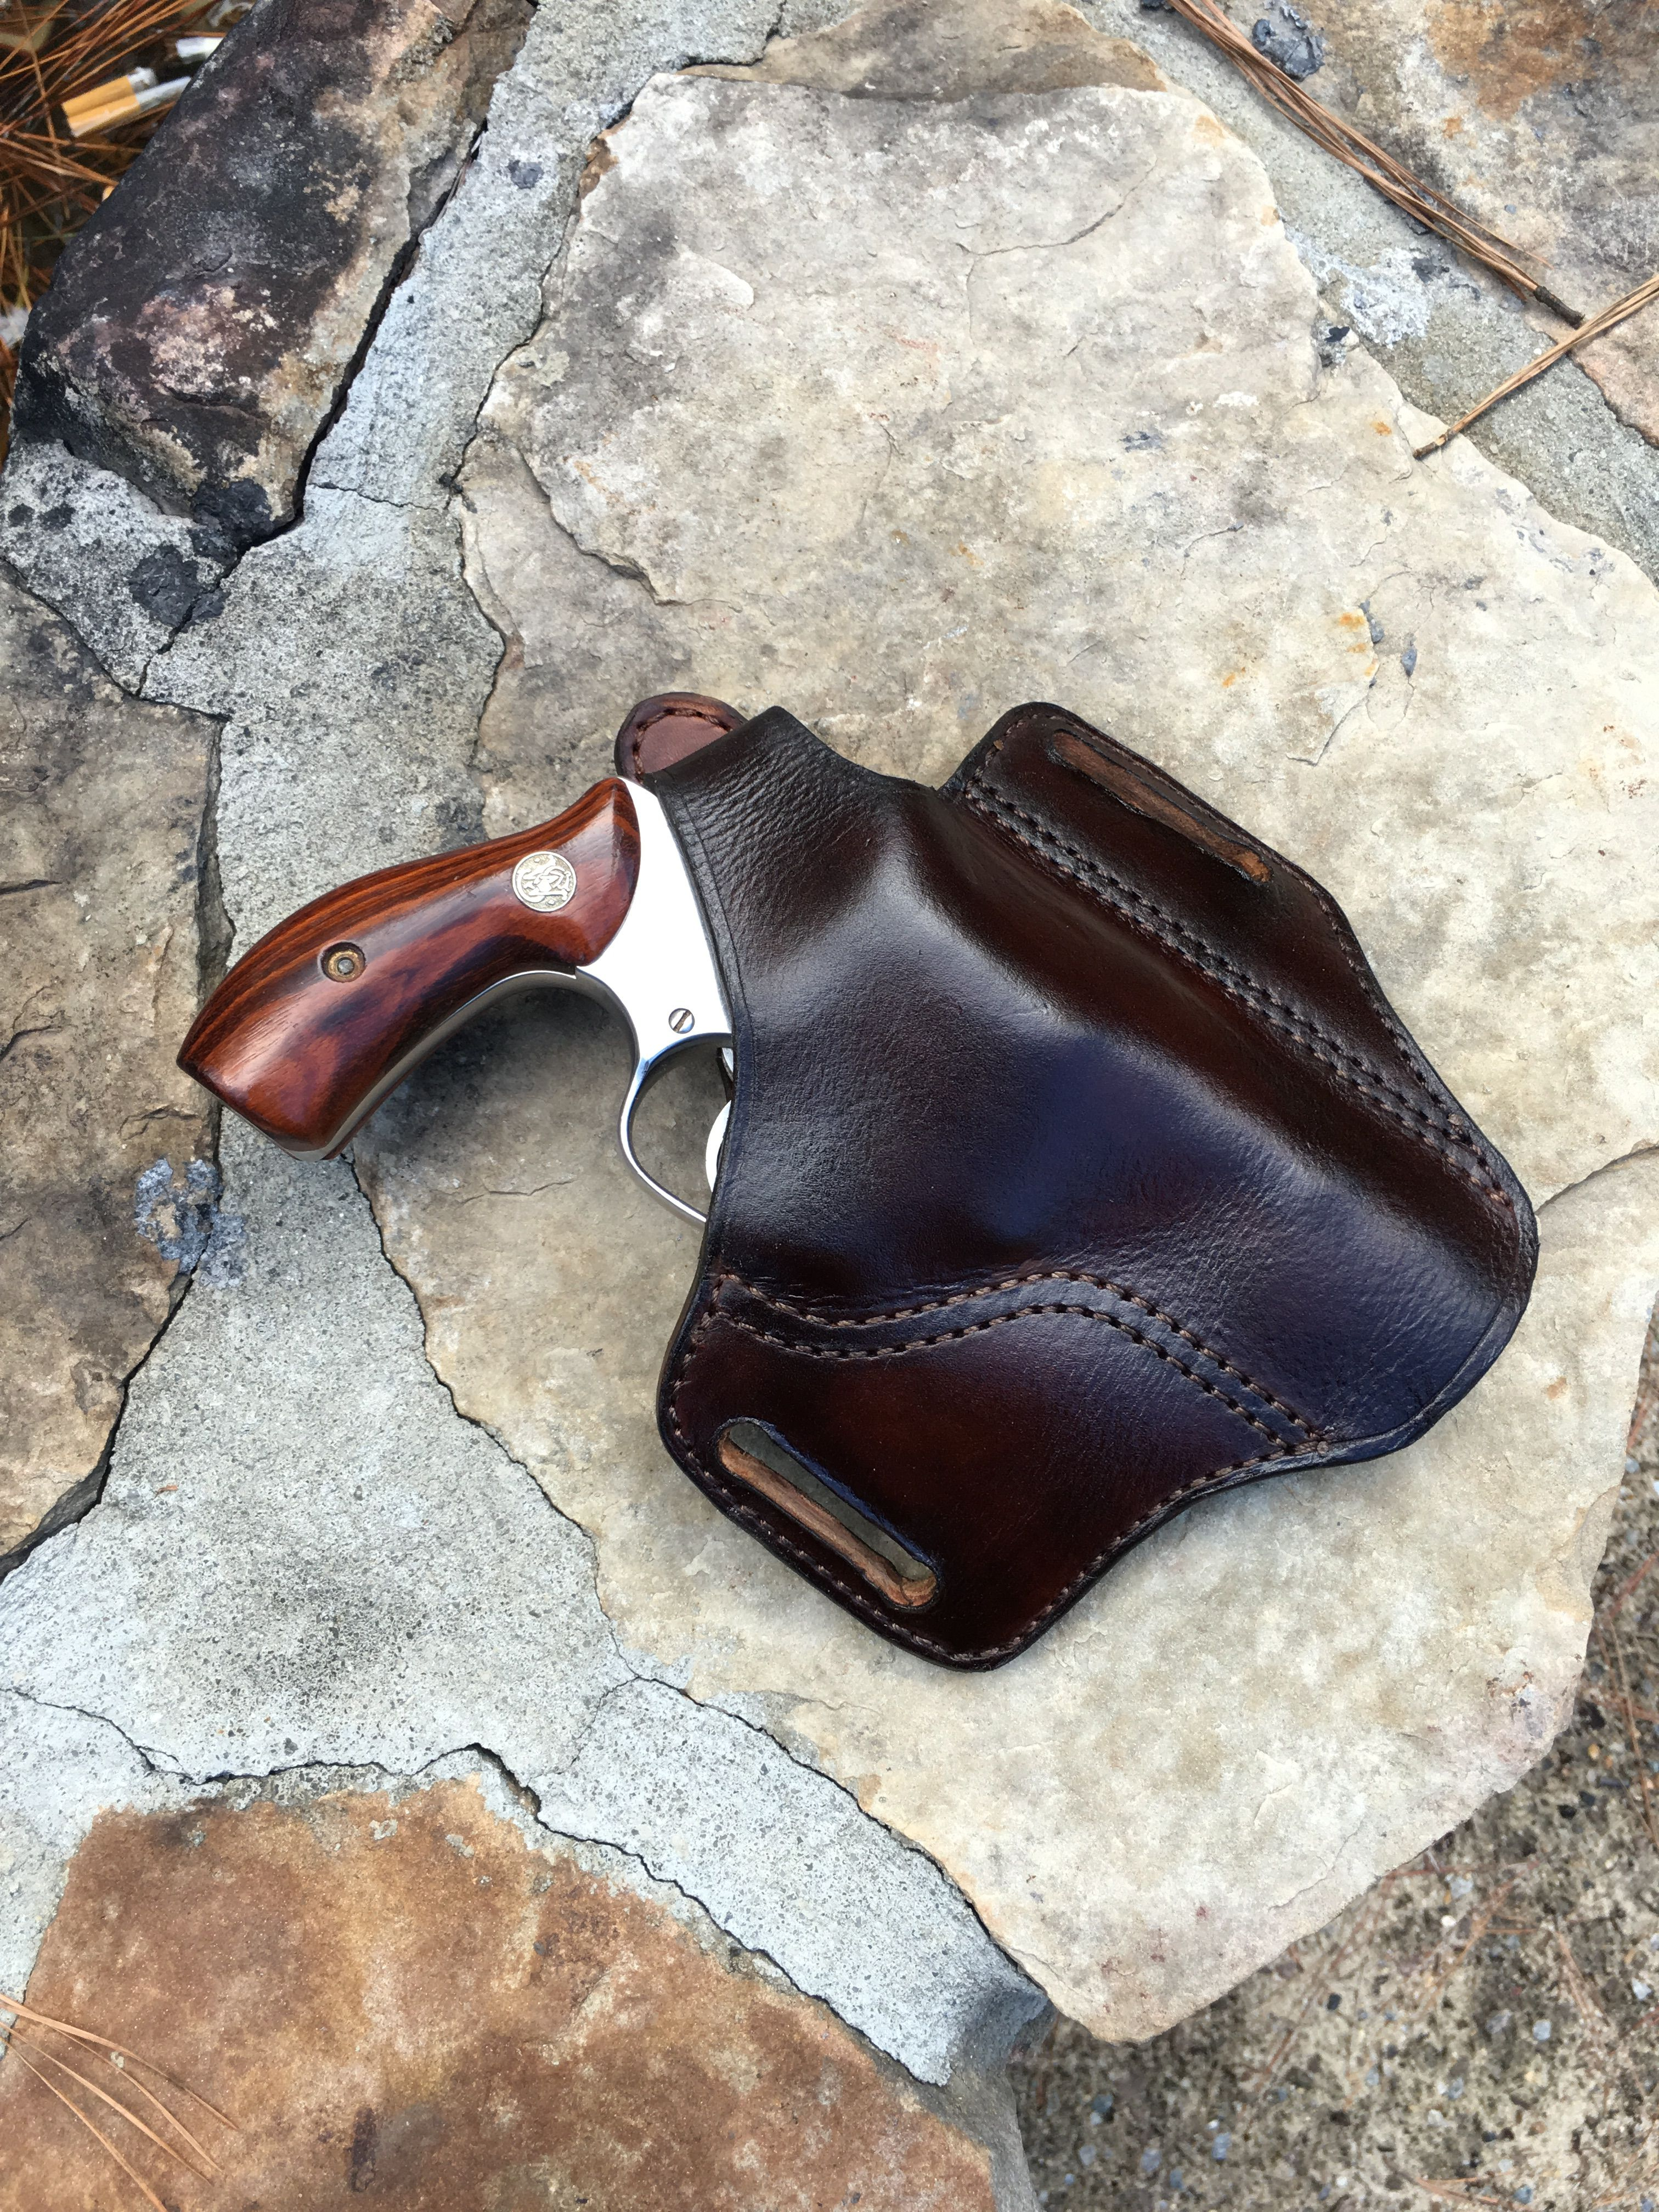 Pancake holster smith and Wesson 3 inch J frame  Custom